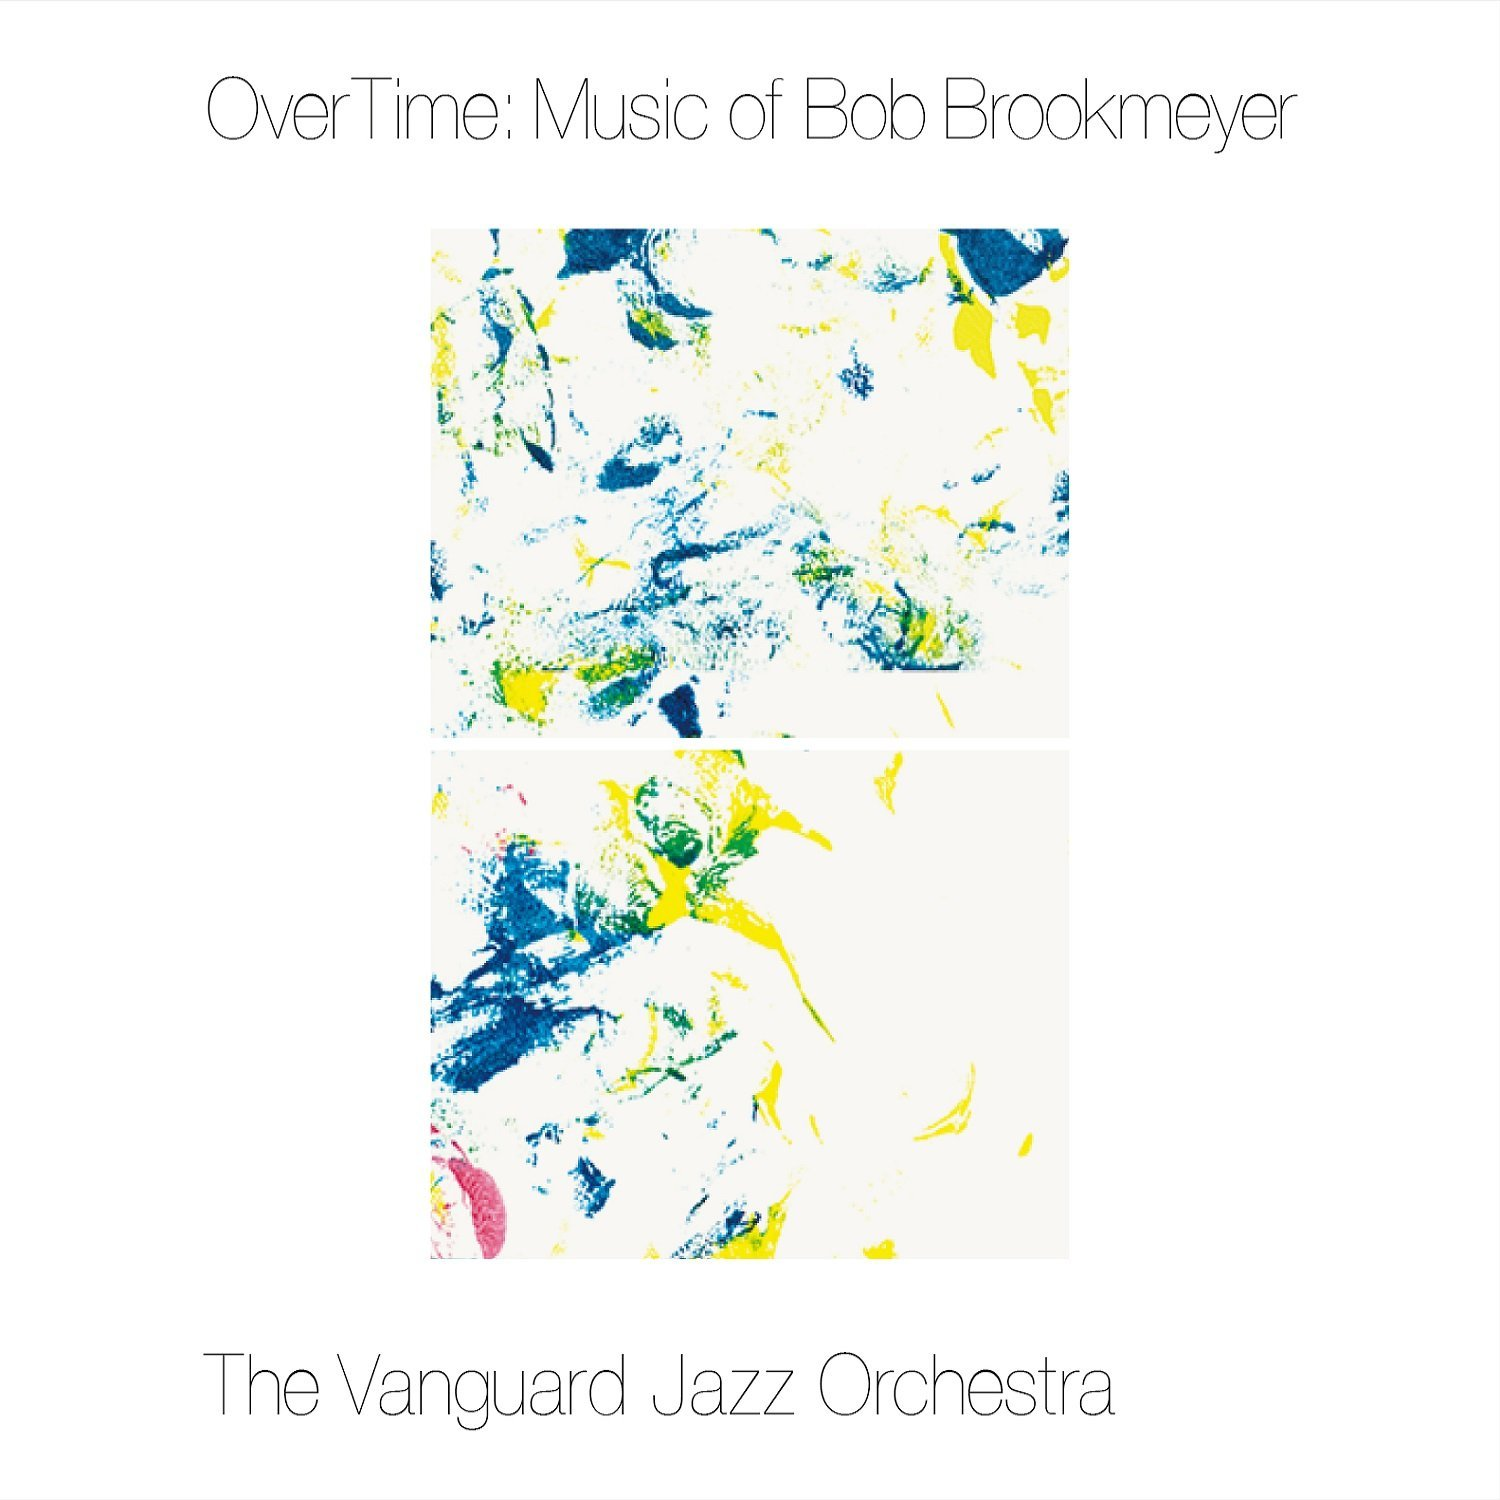 OverTime Music of Bob Brookmeyer